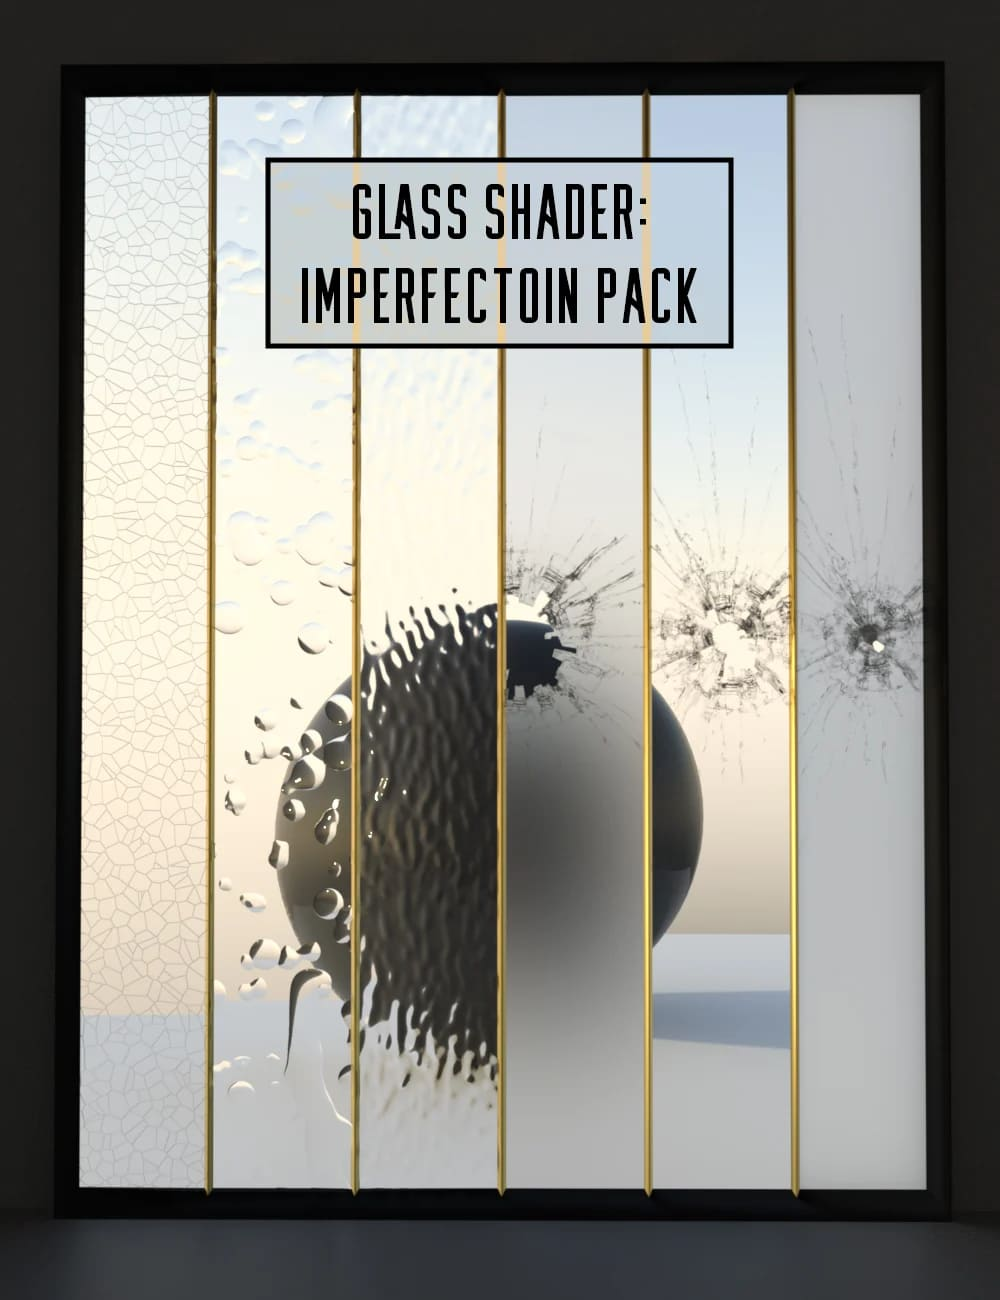 Glass Shader Imperfection Pack_DAZ3D下载站